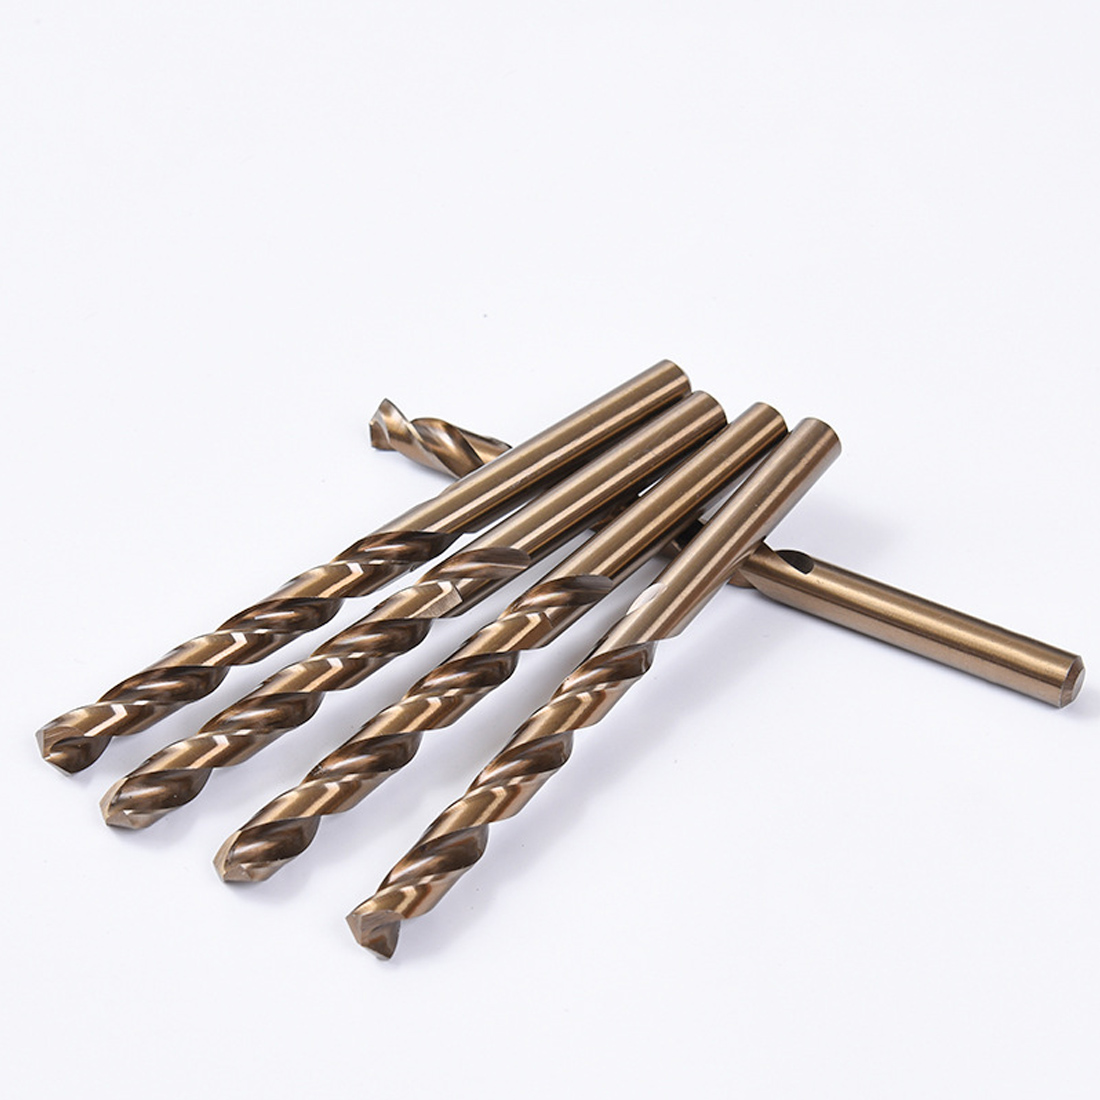 Hot 1mm 1.5mm 2mm HSS-CO M35 Cobalt Steel Straight Shank Twist Drill Bits For Stainless Steel/Metal/Aluminum/Copper/Plastic/Wood